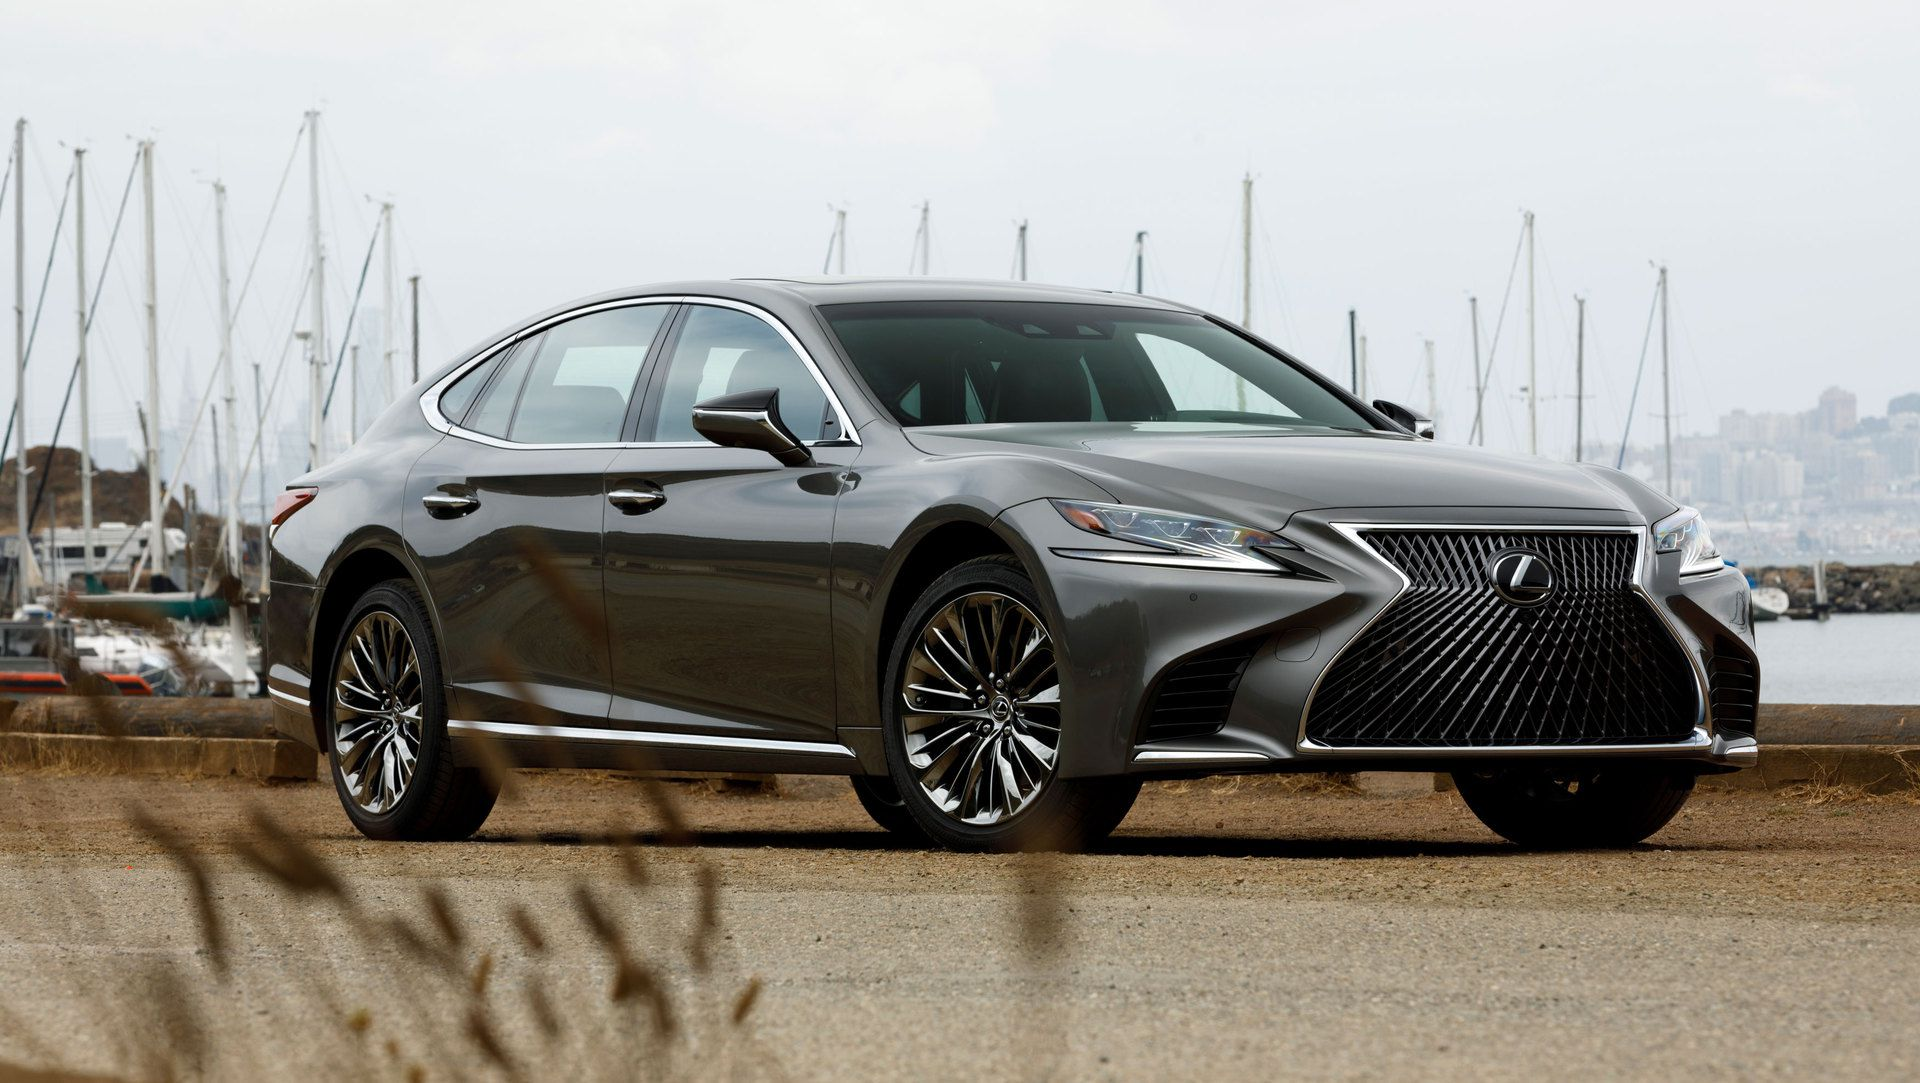 Lexus Hybrid Suv >> Video & Photo Gallery: 2018 Lexus LS 500 in Manganese Luster | Auto Moto | Japan Bullet